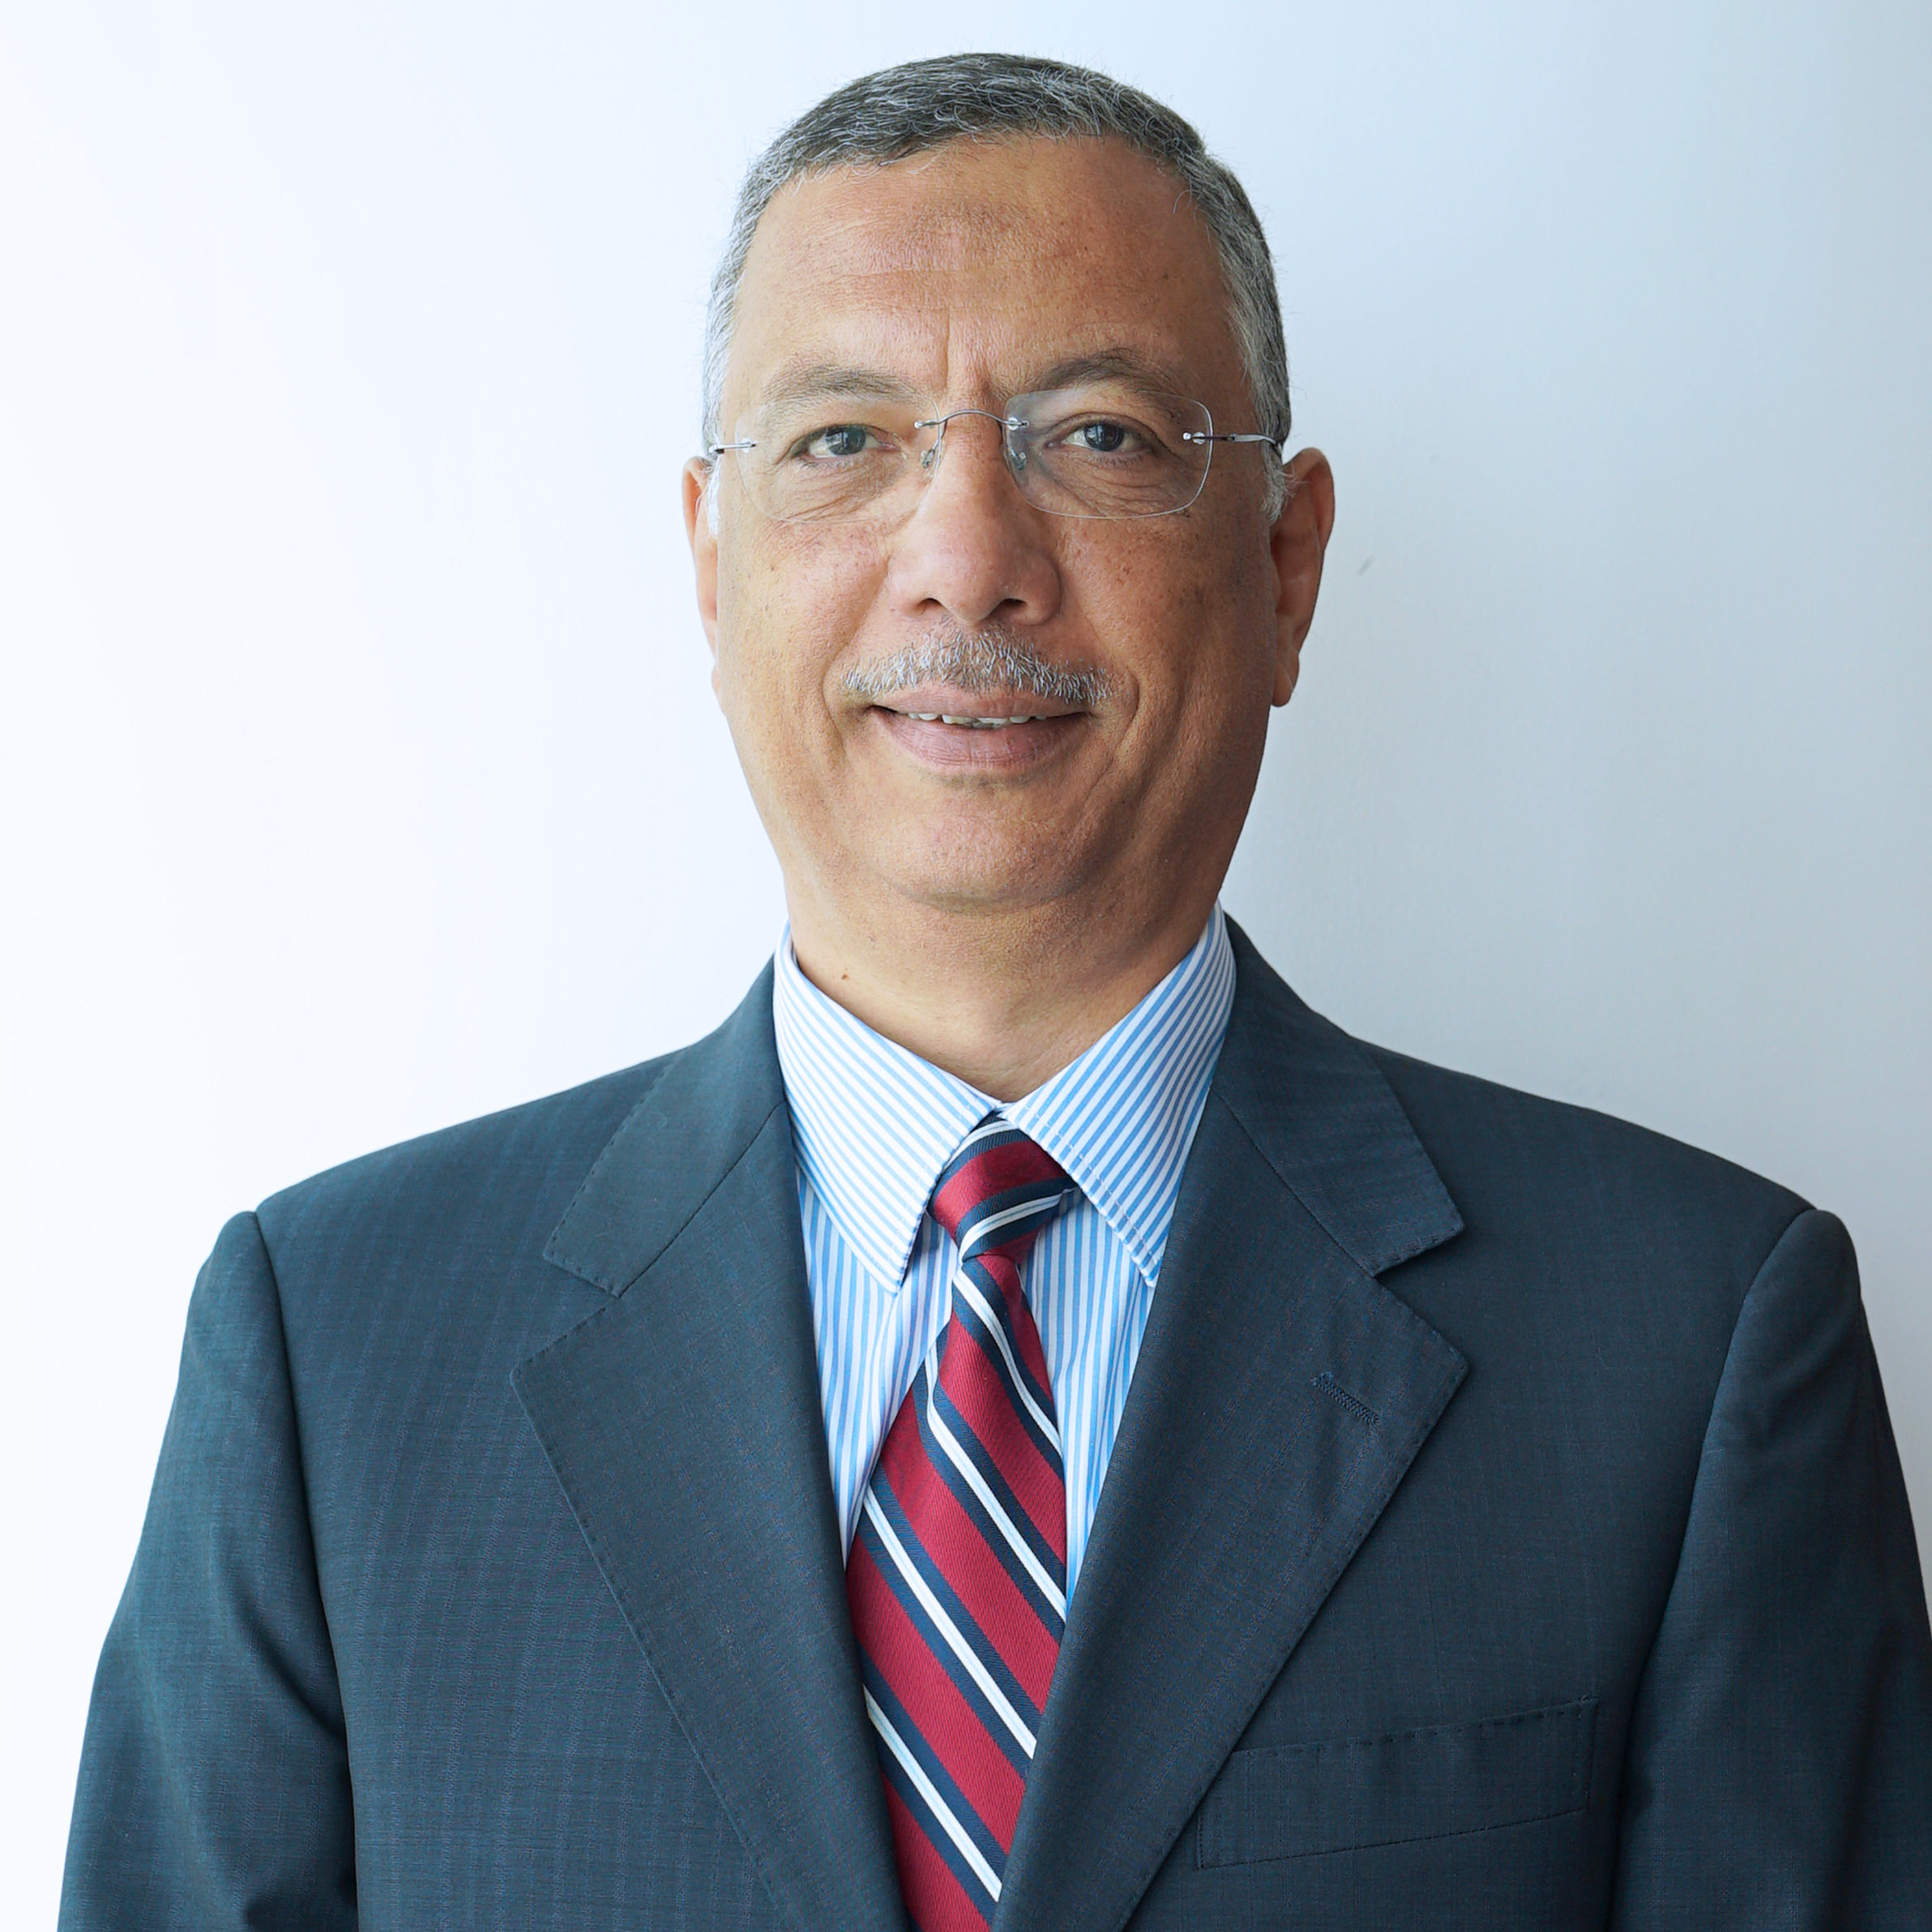 #8 Hamed Zaghw, CEO of AECOM